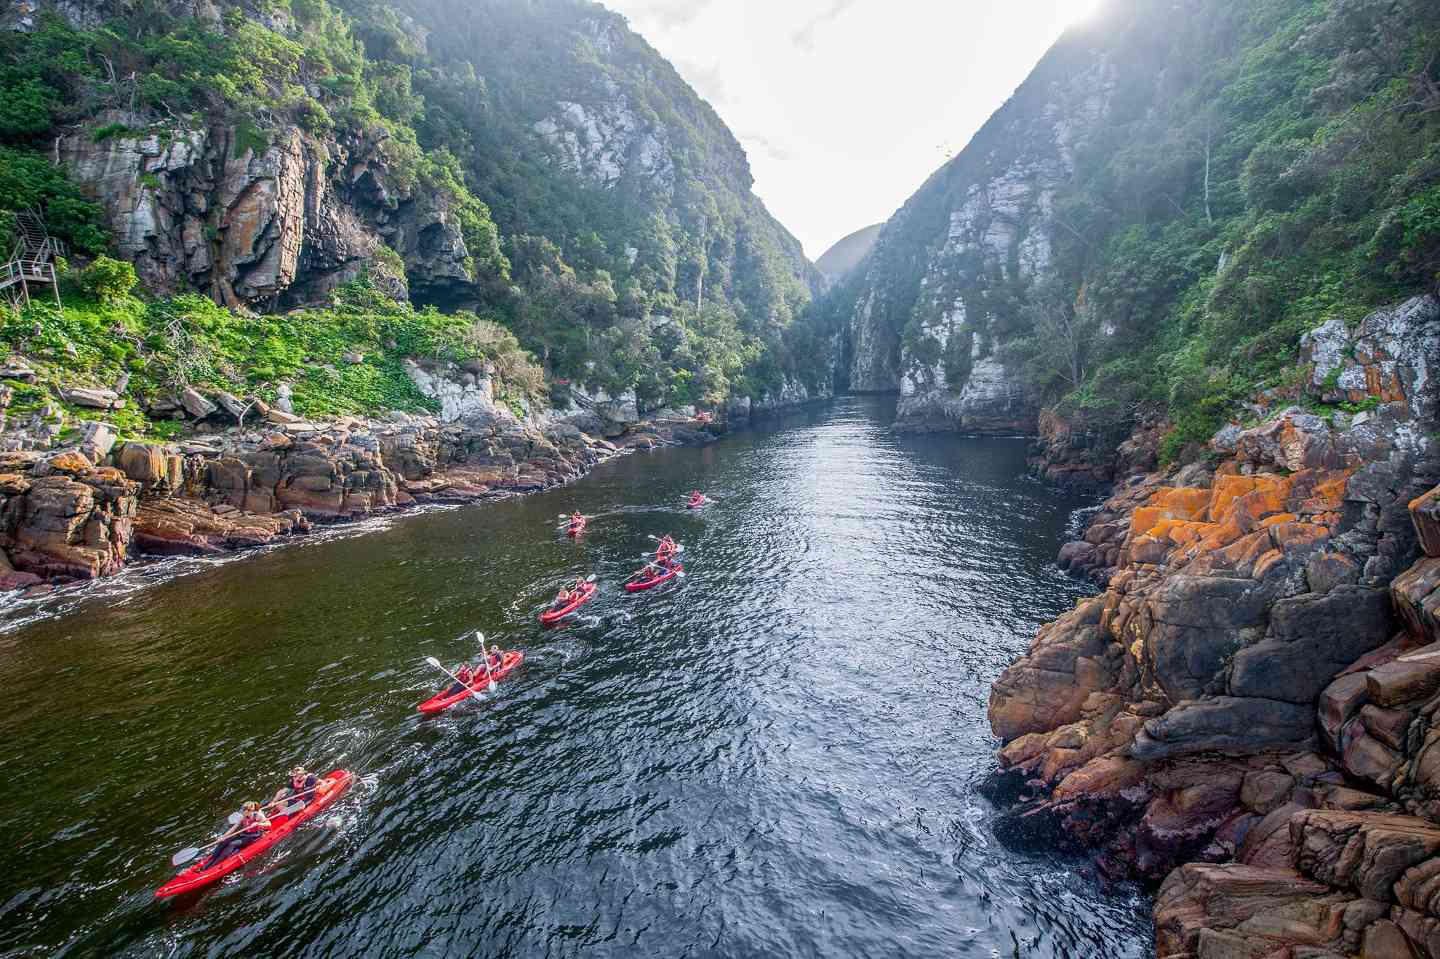 kayaking and lilo u0026 39 s on the storm u2019s river   garden route